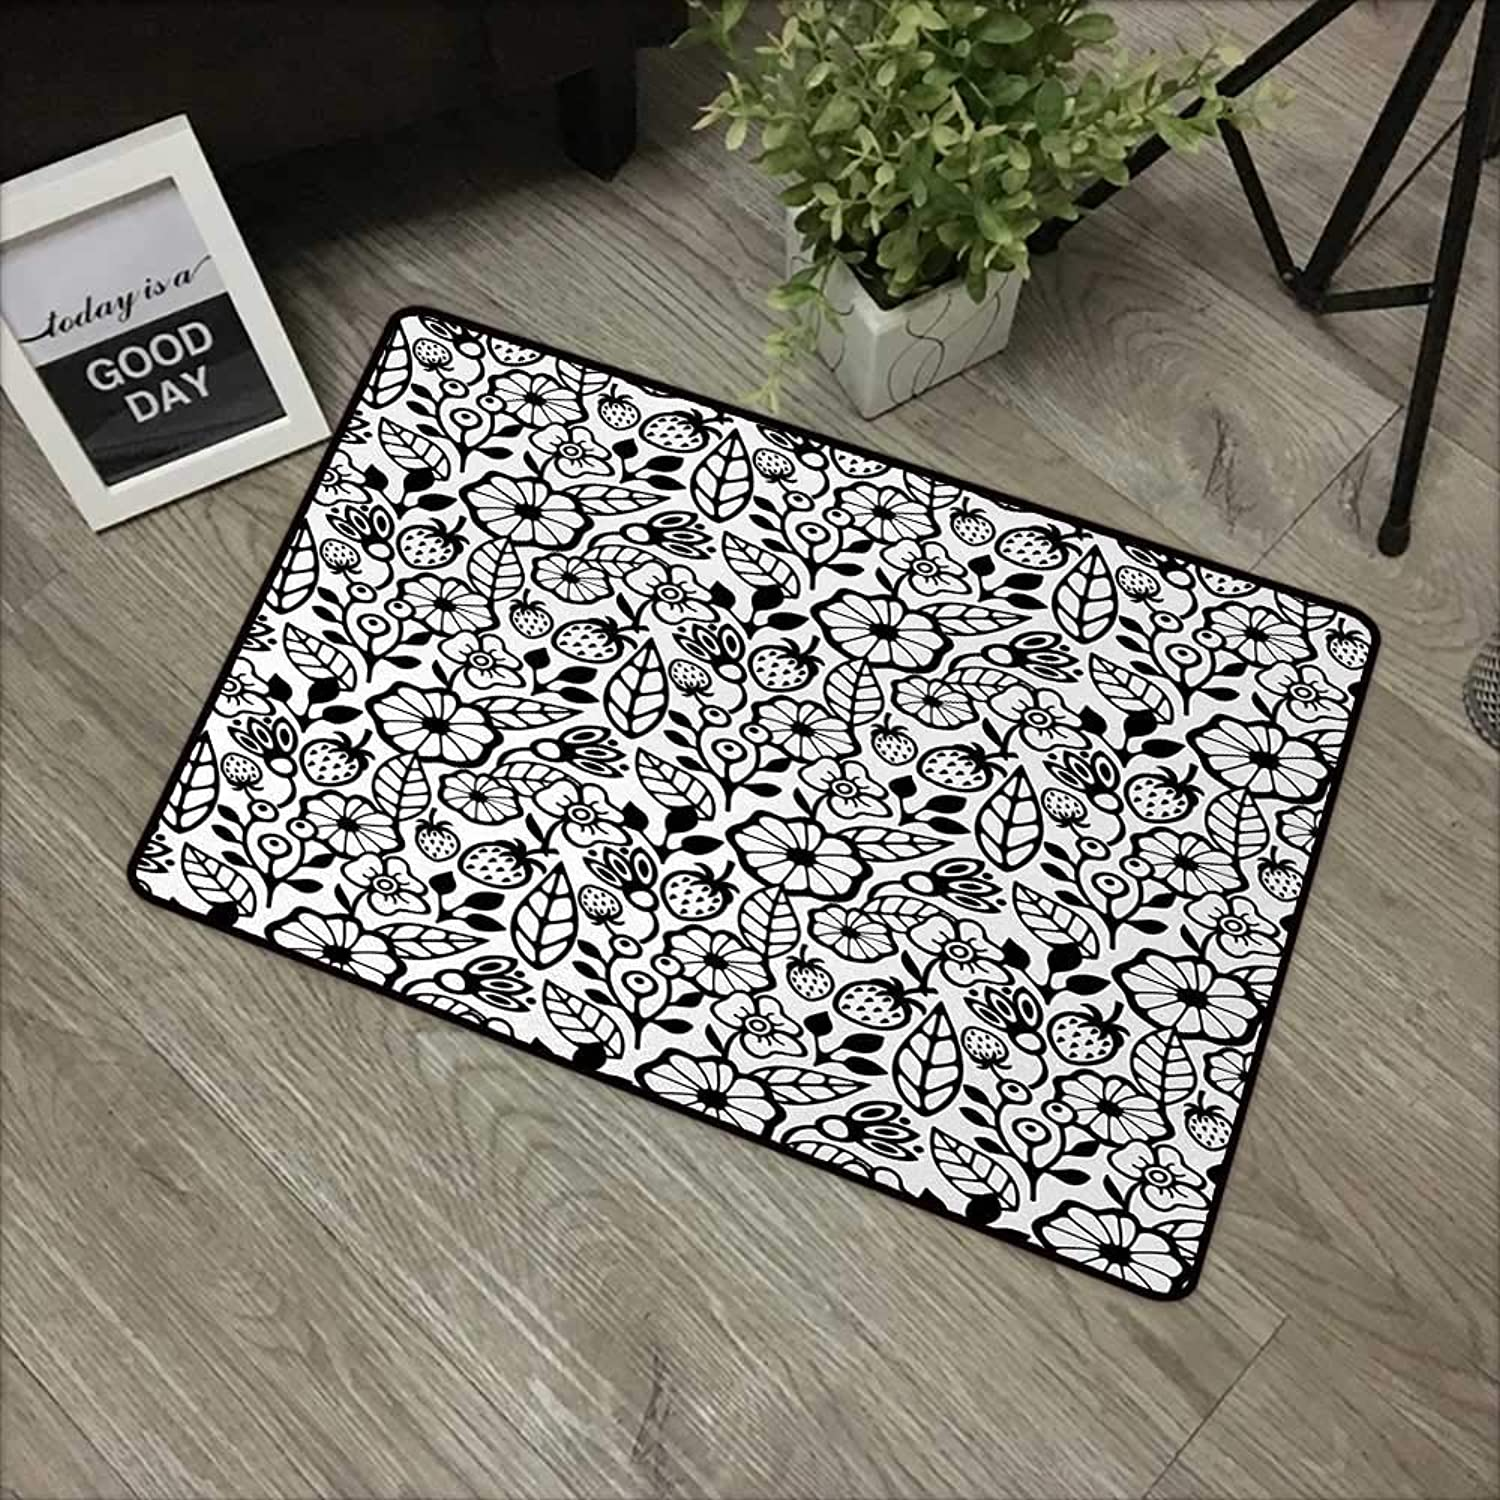 Bathroom Door mat W35 x L59 INCH Floral,Simplistic Stylized Flower Bouquet Blooming Petals Botanical Beauty Field Theme,Black White Non-Slip, with Non-Slip Backing,Non-Slip Door Mat Carpet